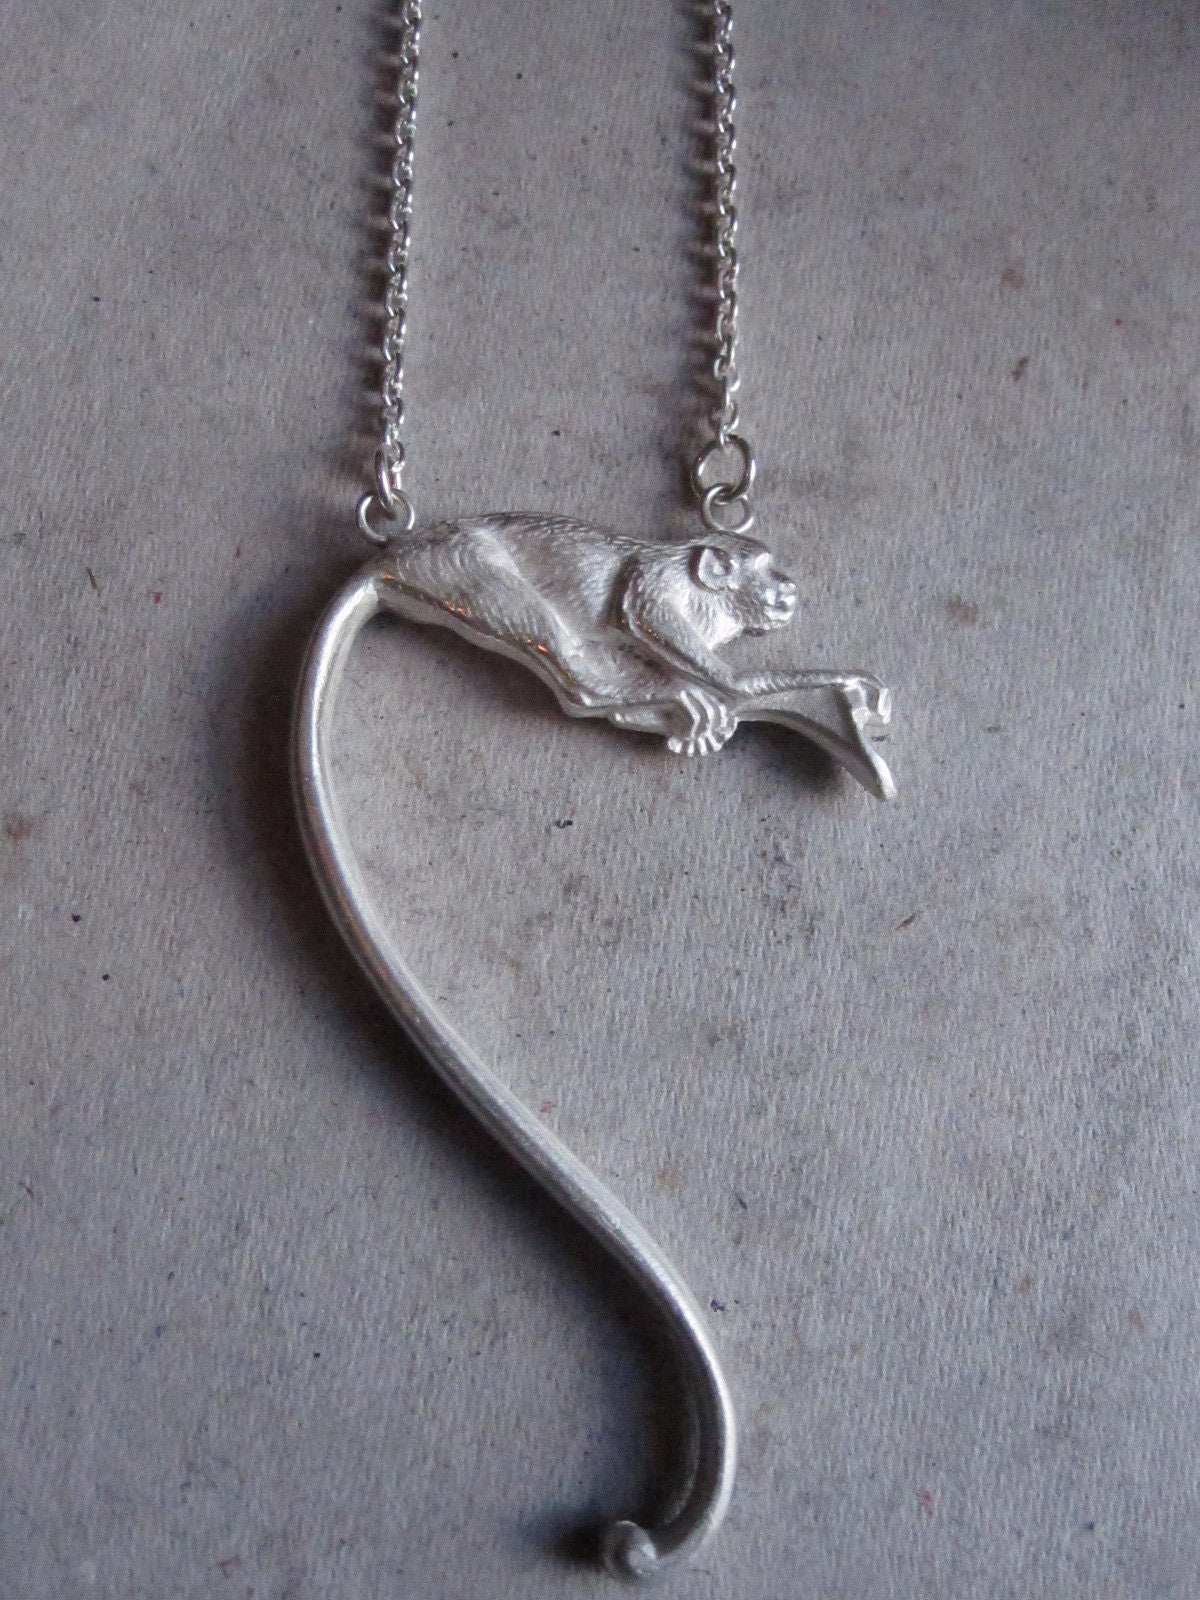 WDTS Sheffield Silver - Monkey Necklace - Silver